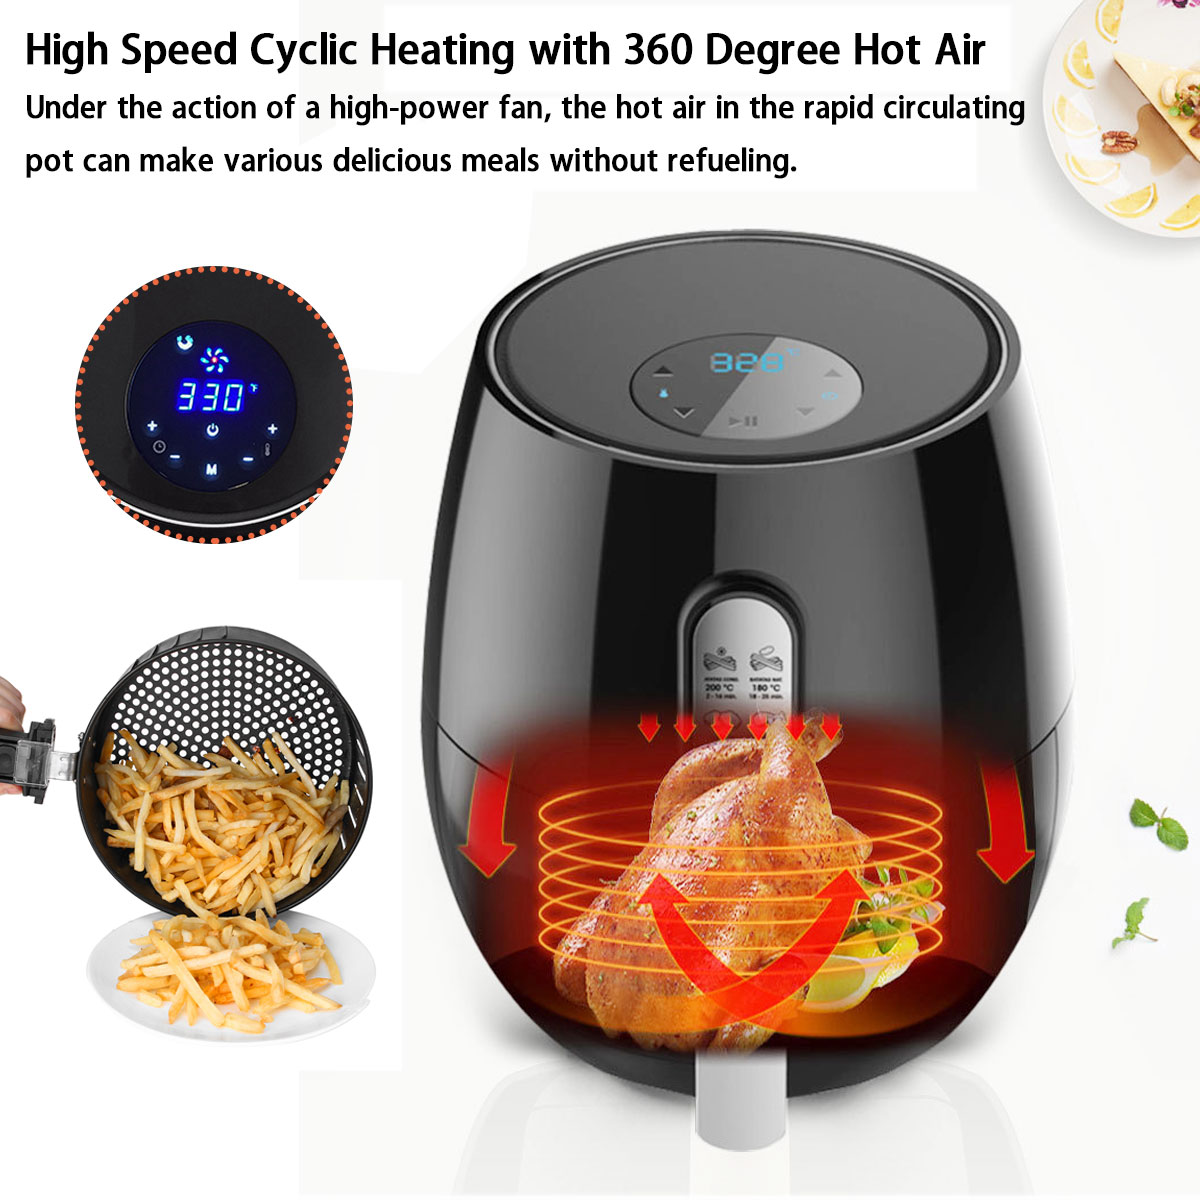 our electric deep air fryer, which provides an easy and healthy way of preparing food